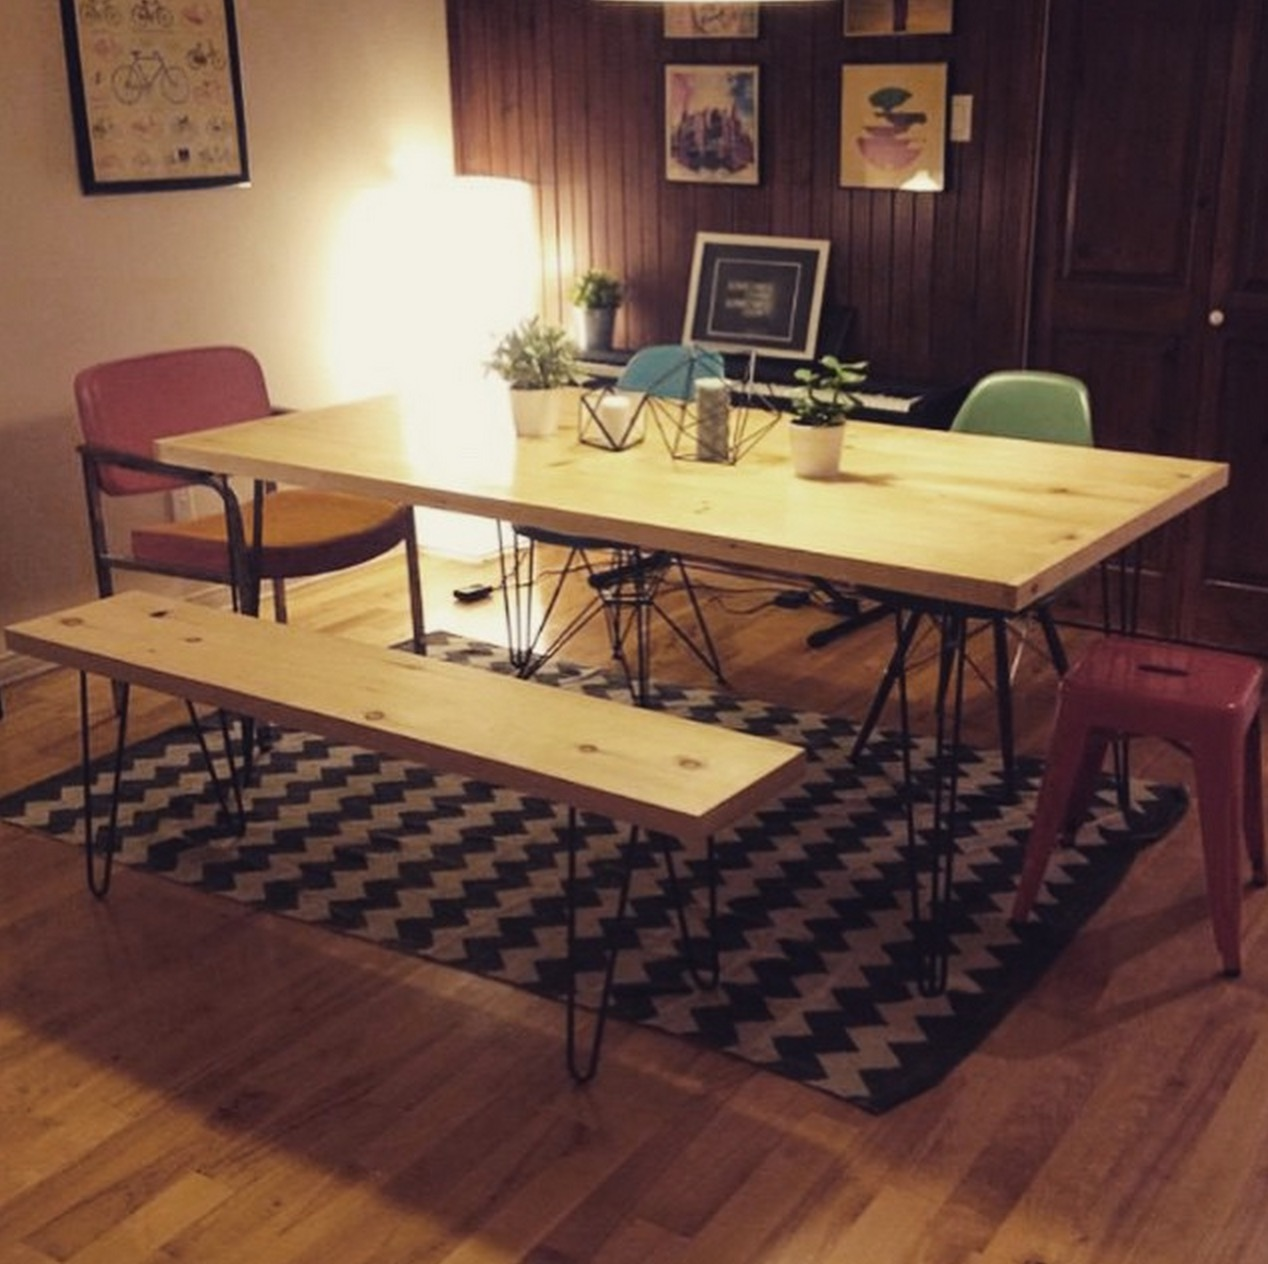 Industric-MTL-TABLE-Montreal-04